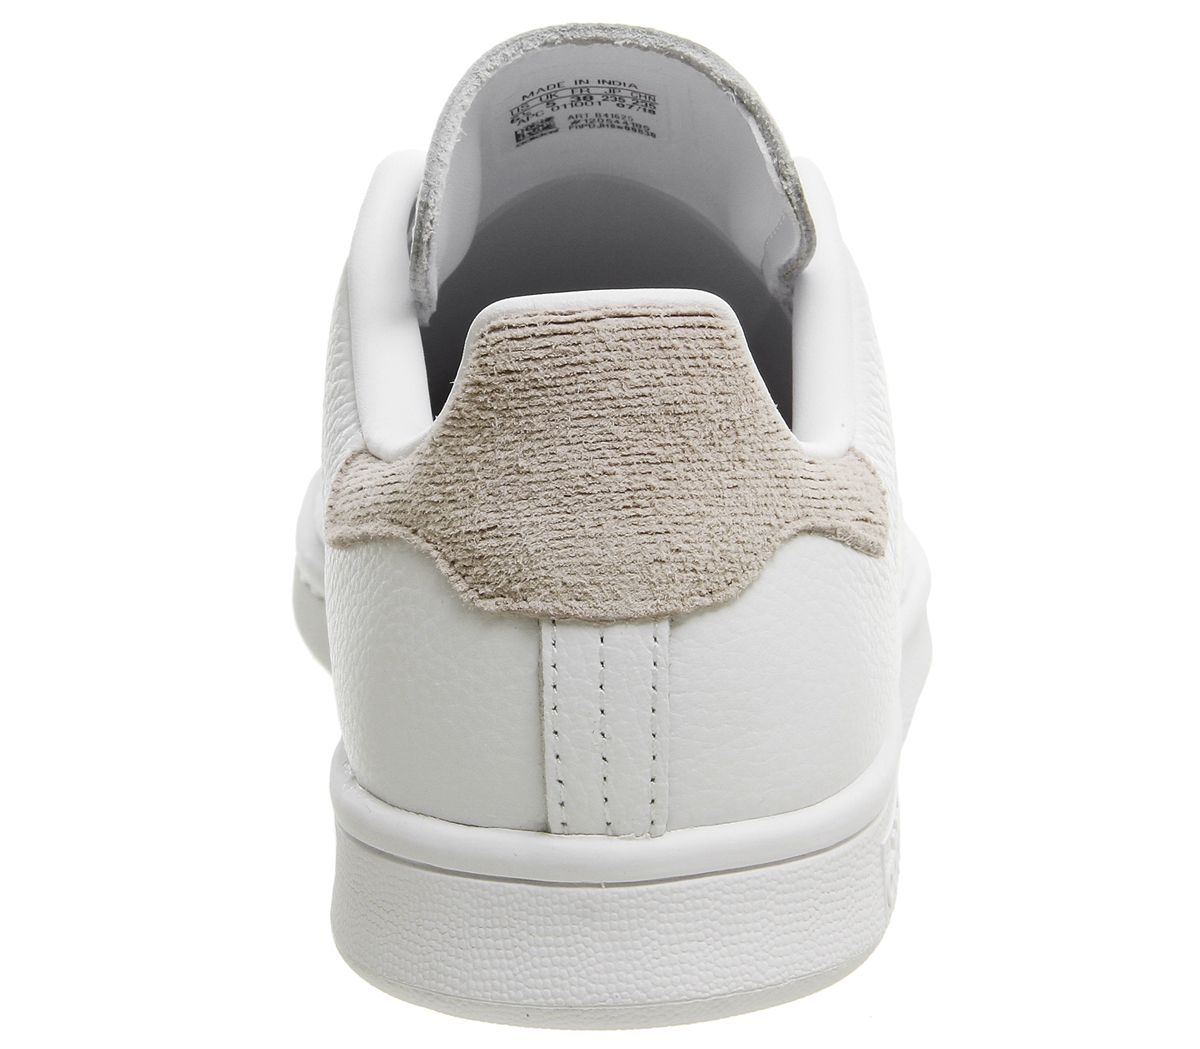 Short-Femme-Adidas-Stan-Smith-Baskets-White-Orchid-Tint-Baskets-Chaussures miniature 10